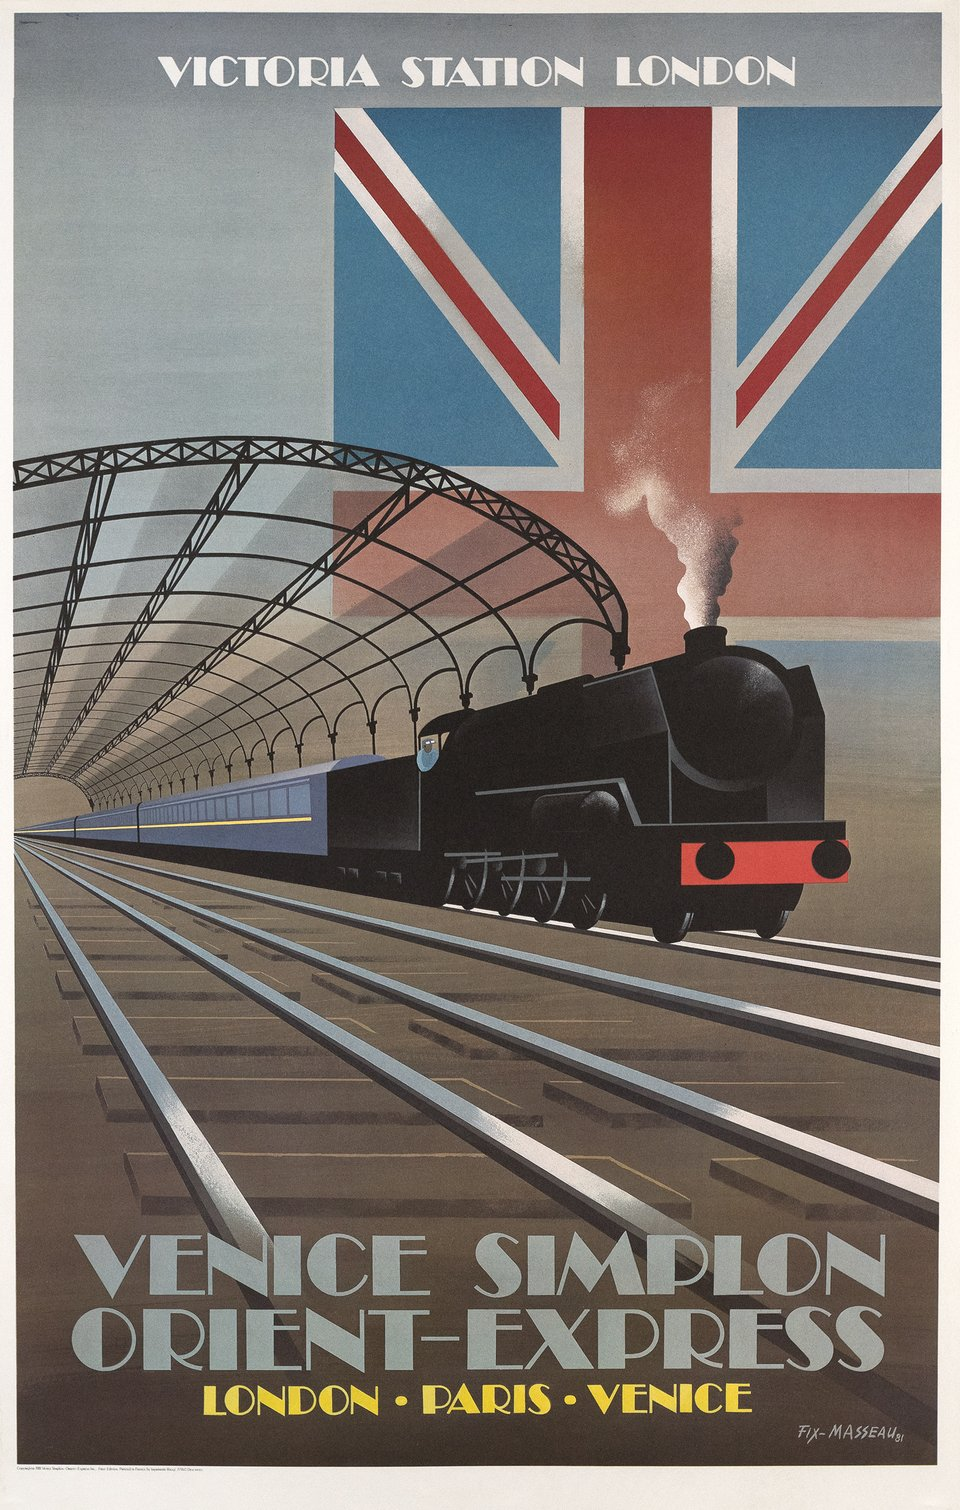 Victoria Station London, Venice Simplon Orient Express, London Paris Venice – Affiche ancienne – Pierre FIX-MASSEAU – 1981